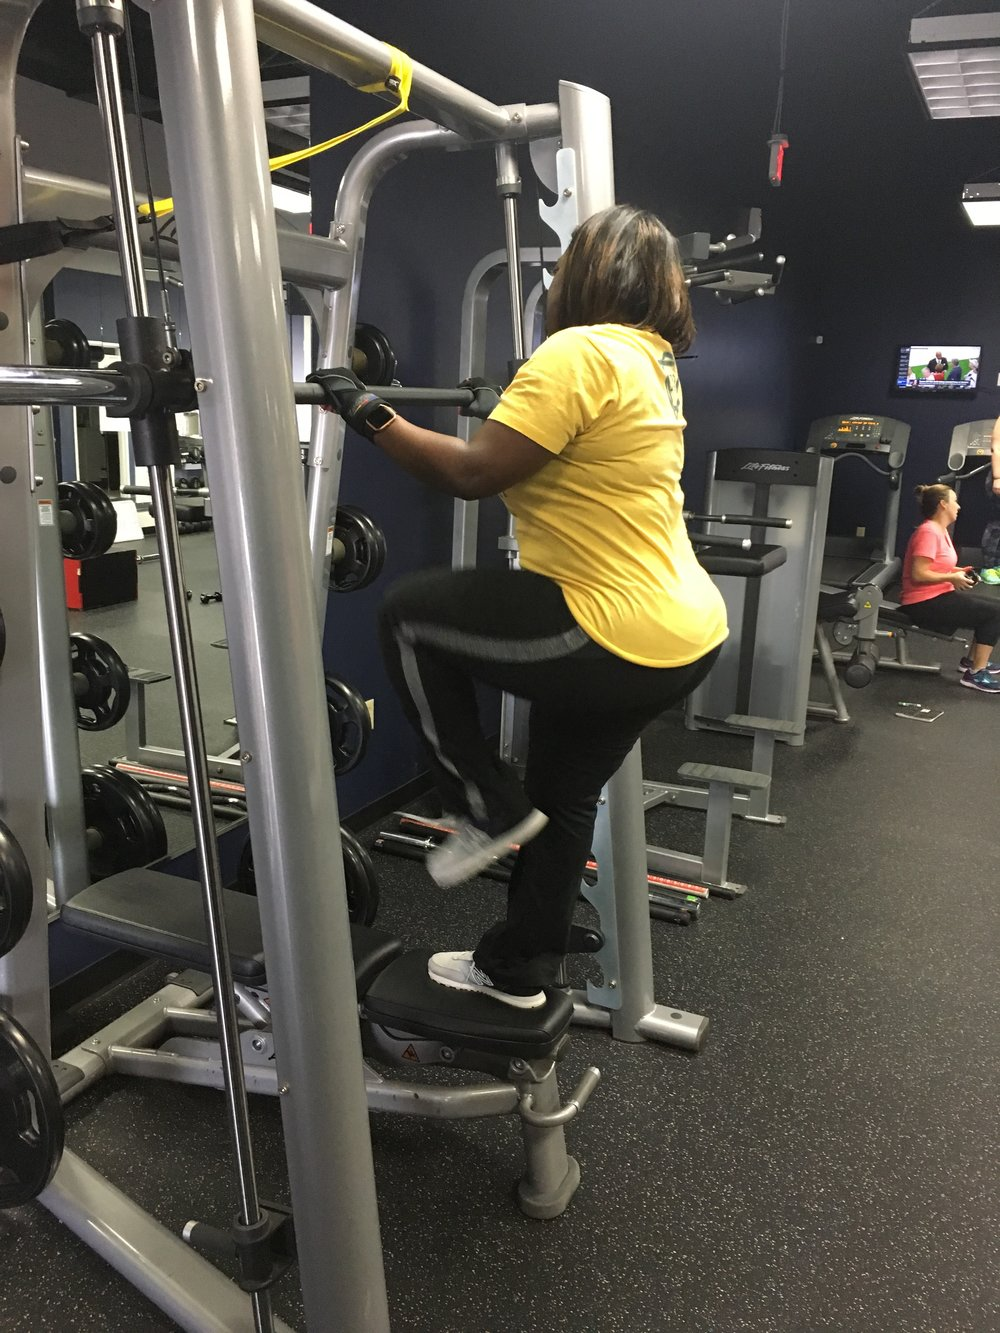 Gym Equipment Fitness, Plano Texas